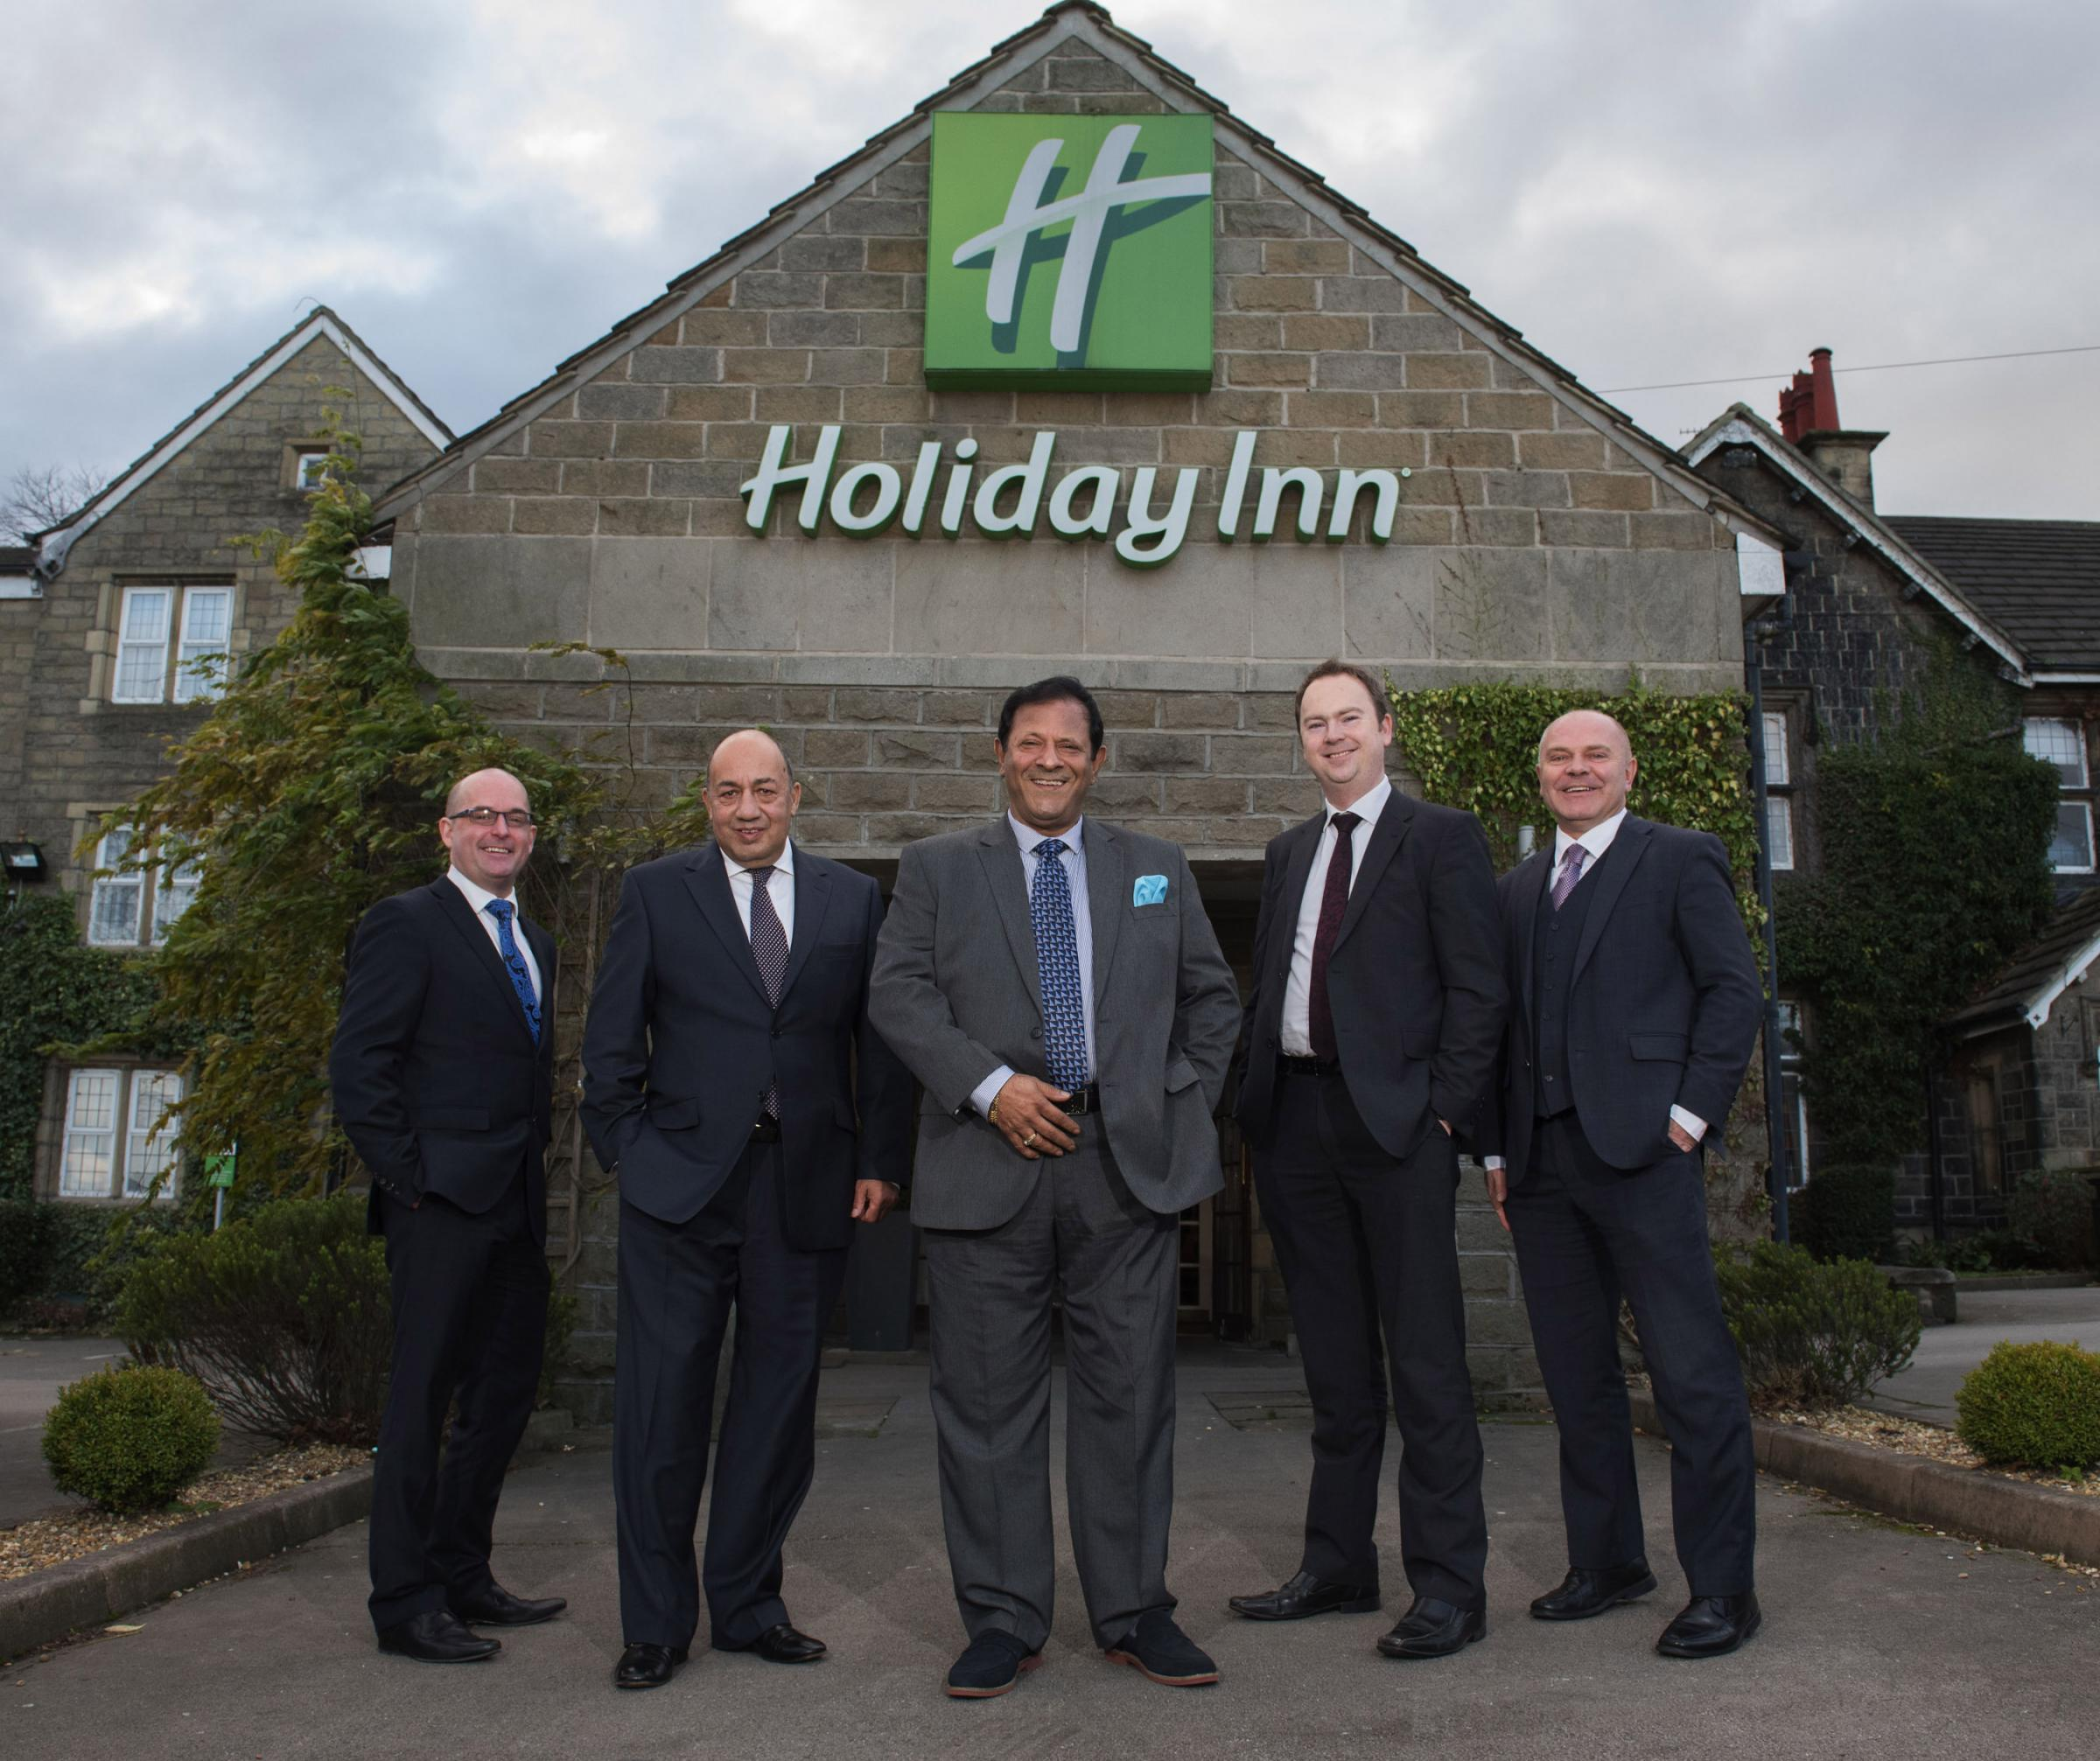 Pictured left to right: Steve Sisson, Allied Irish Bank (GB); Shiban Khashu, Operations Director Holiday Inn Leeds Bradford; Anish Bir; Stewart Coles, Sydney Mitchell; Mark Duggan, Allied Irish Bank (GB)